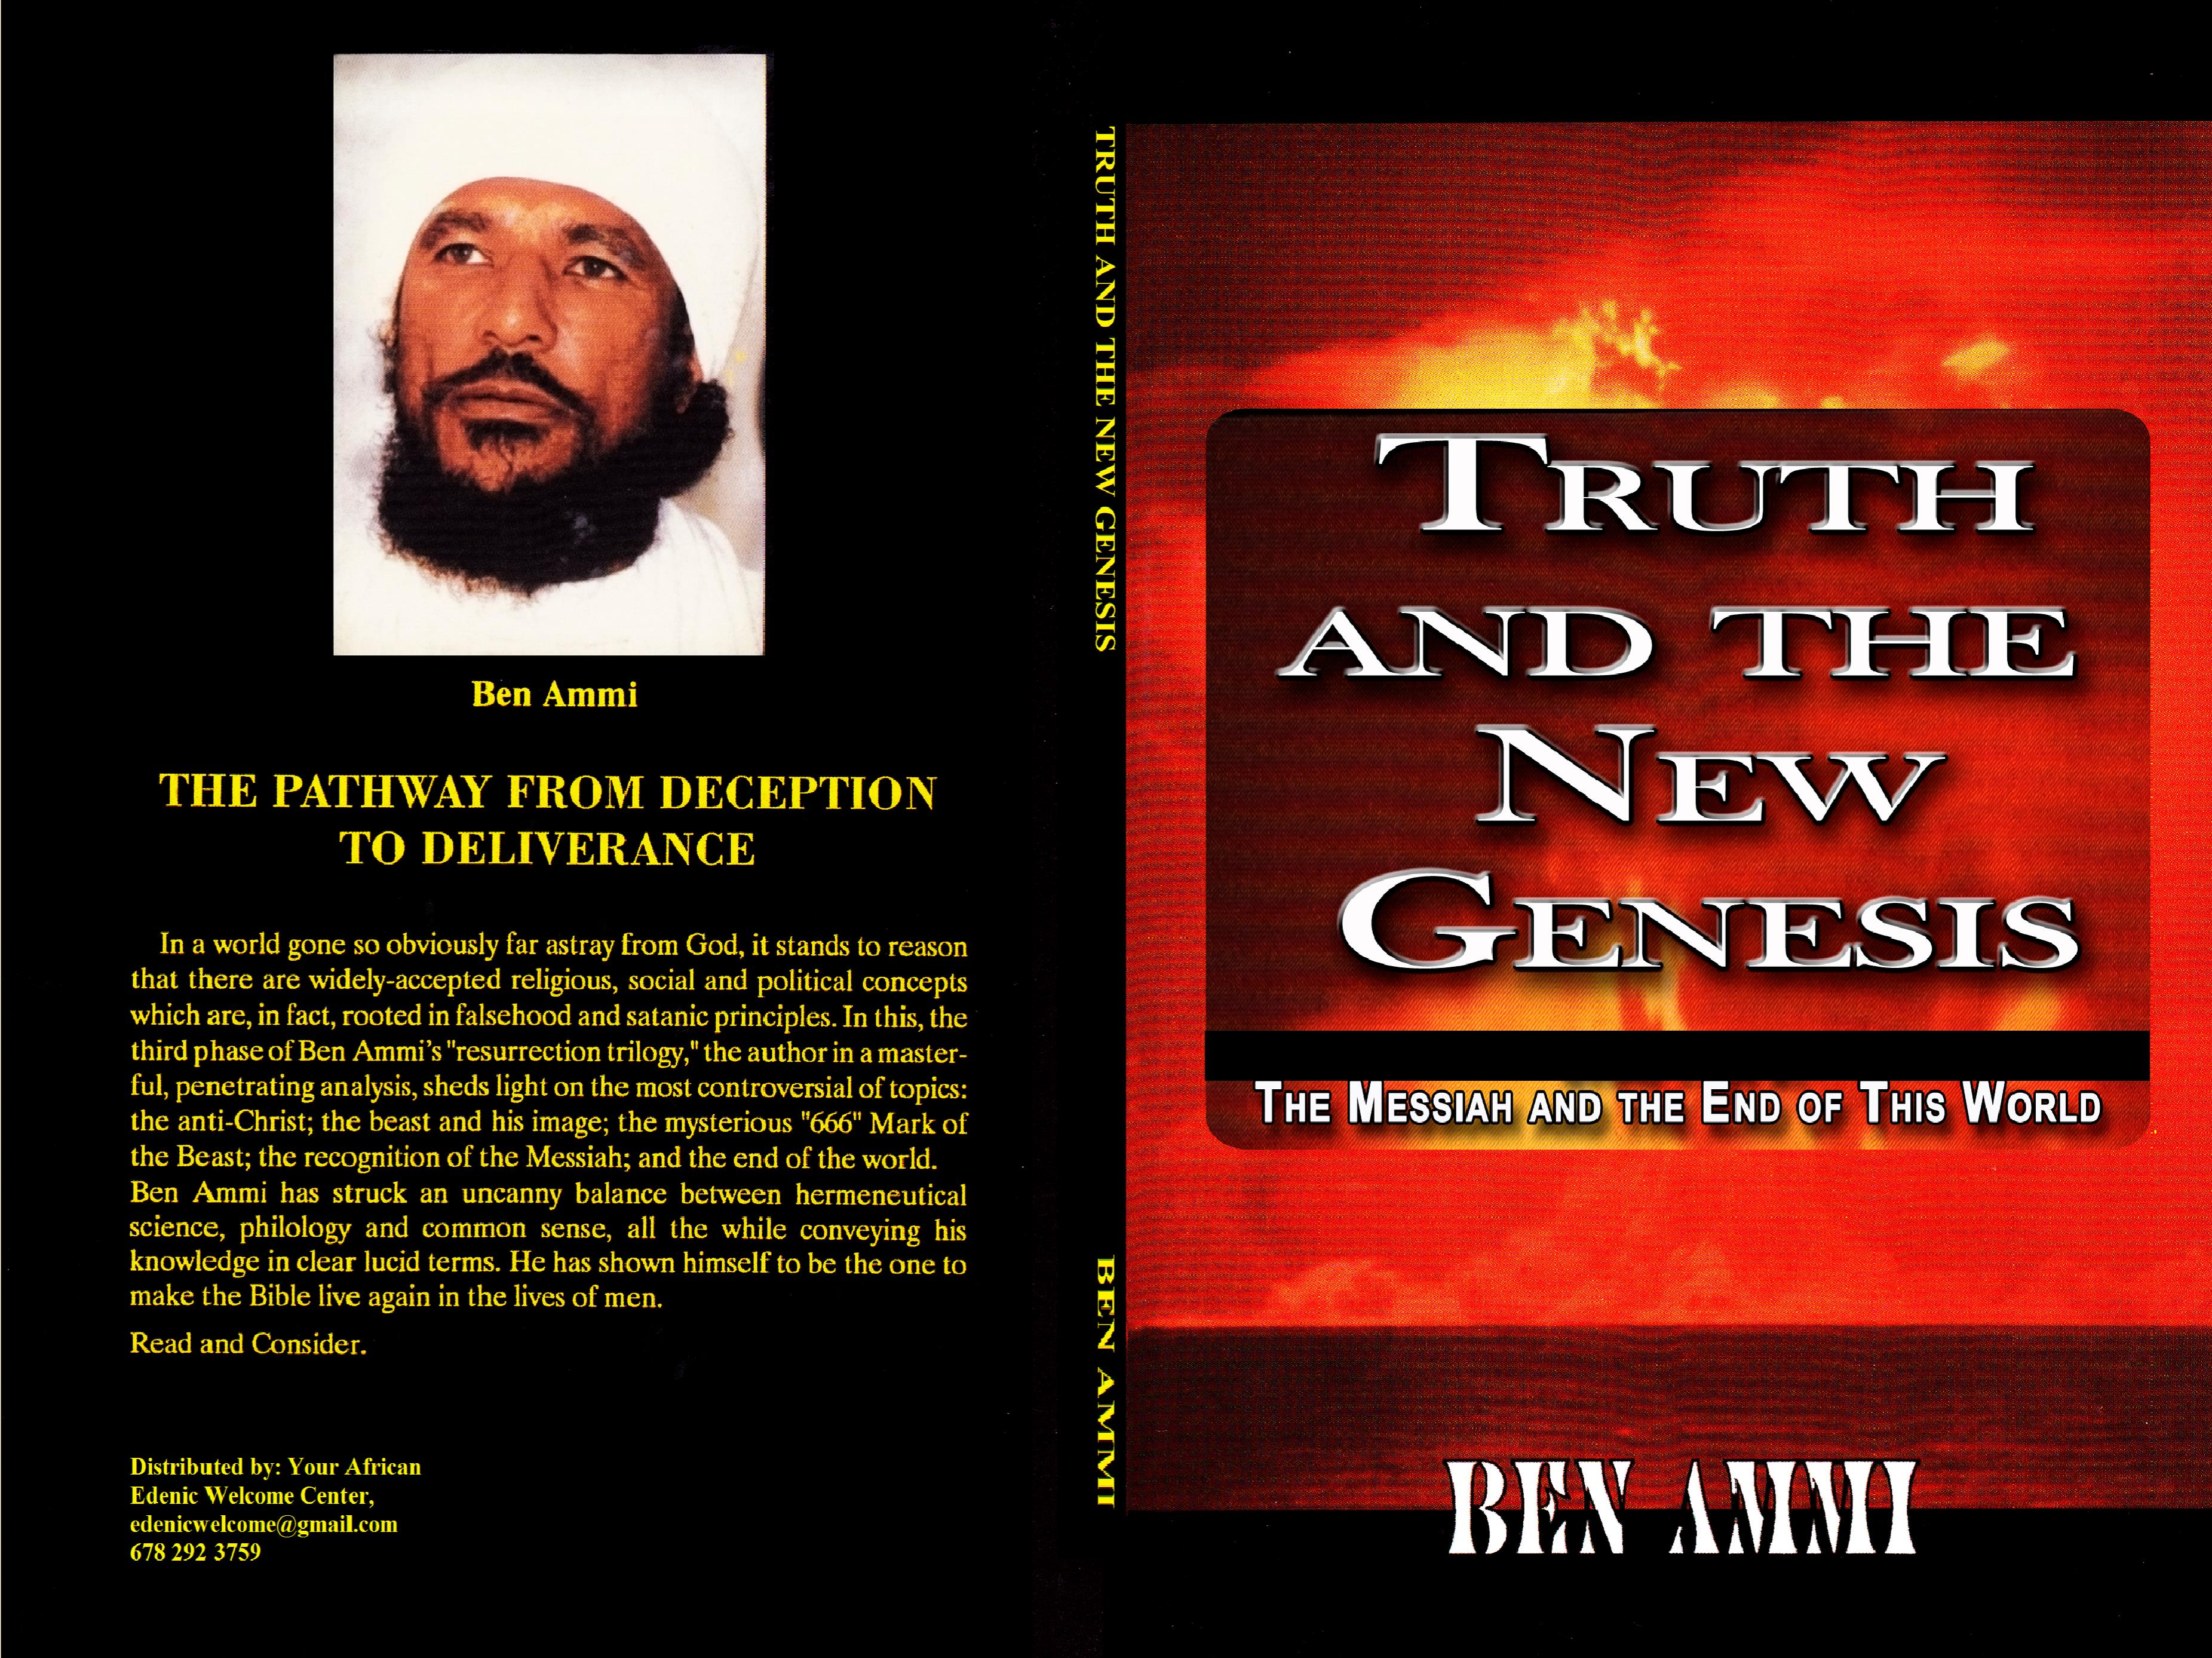 Truth And The New Genesis cover image